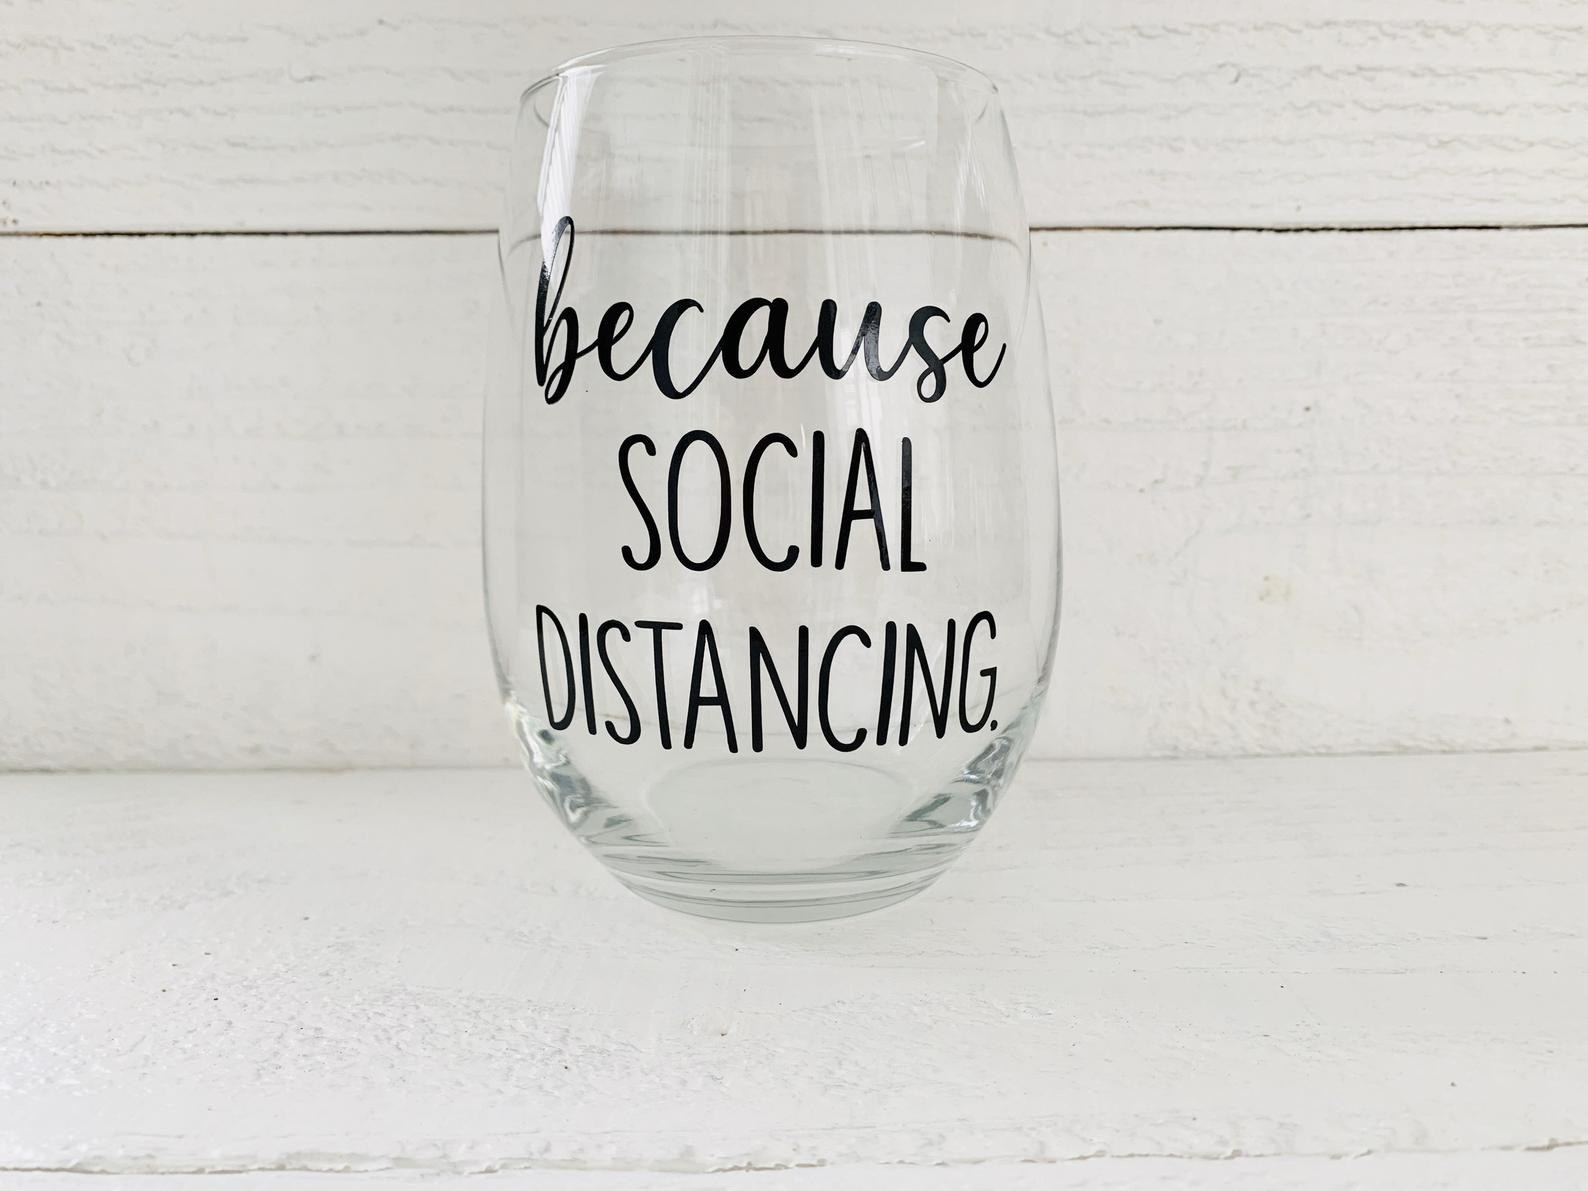 """the stemless glass which says """"because social distancing"""" on it"""